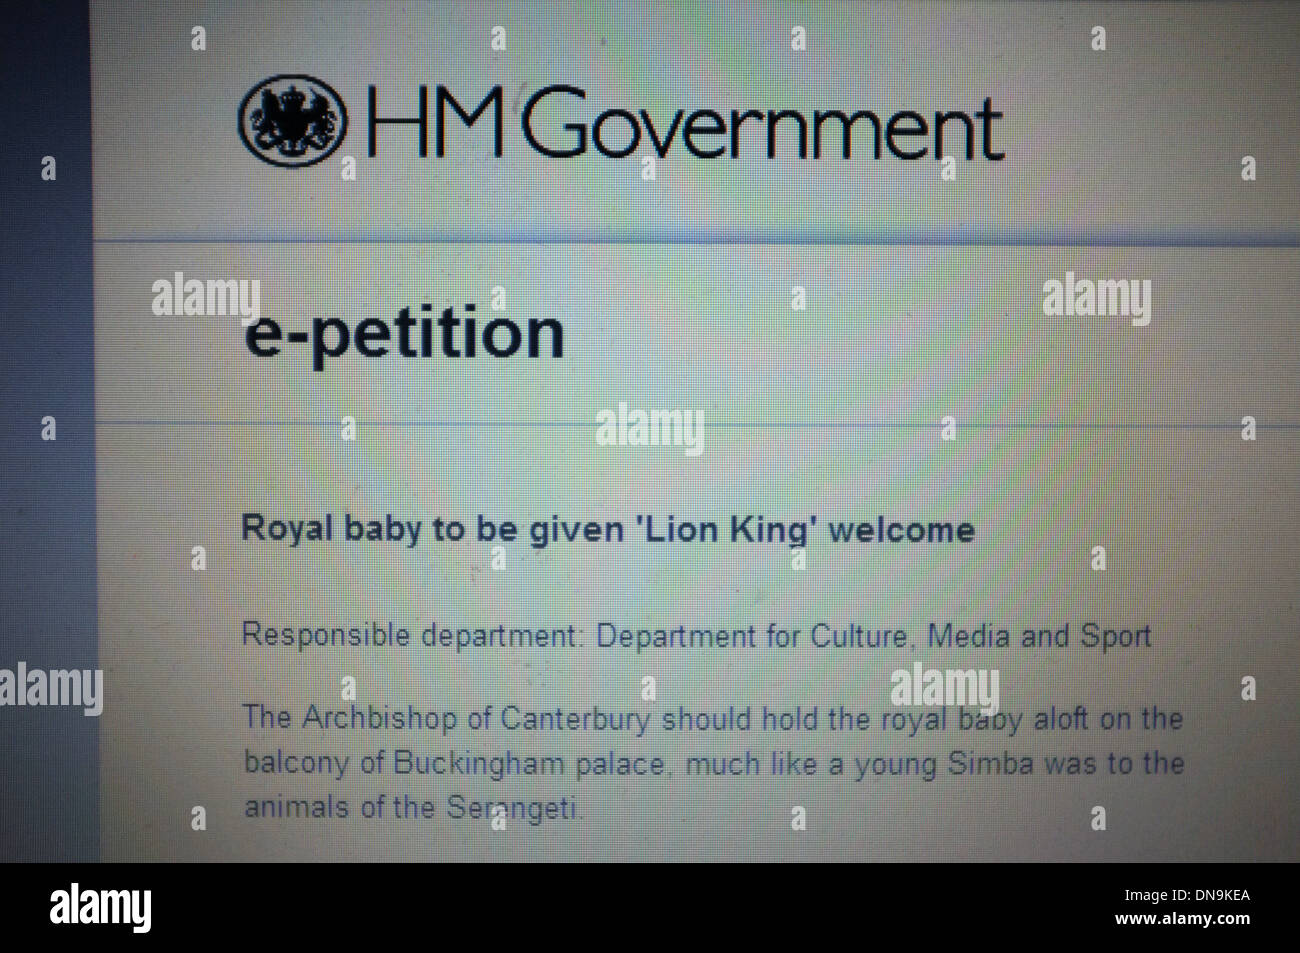 A petition on the British Government website calling for the new Royal baby to be given a Lion King welcome. - Stock Image